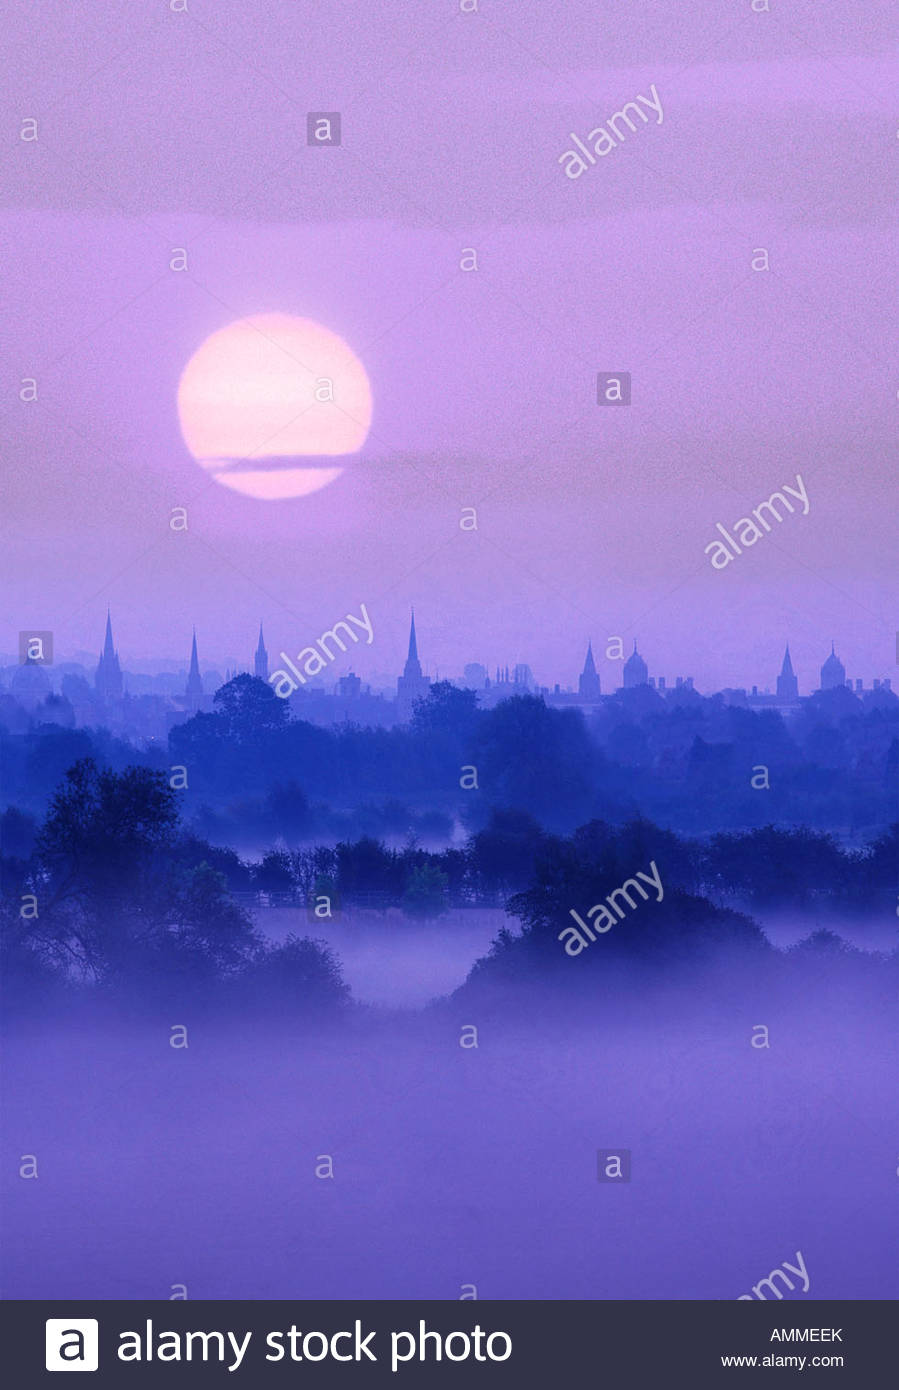 oxford-skyline-at-dawn-AMMEEK.jpg